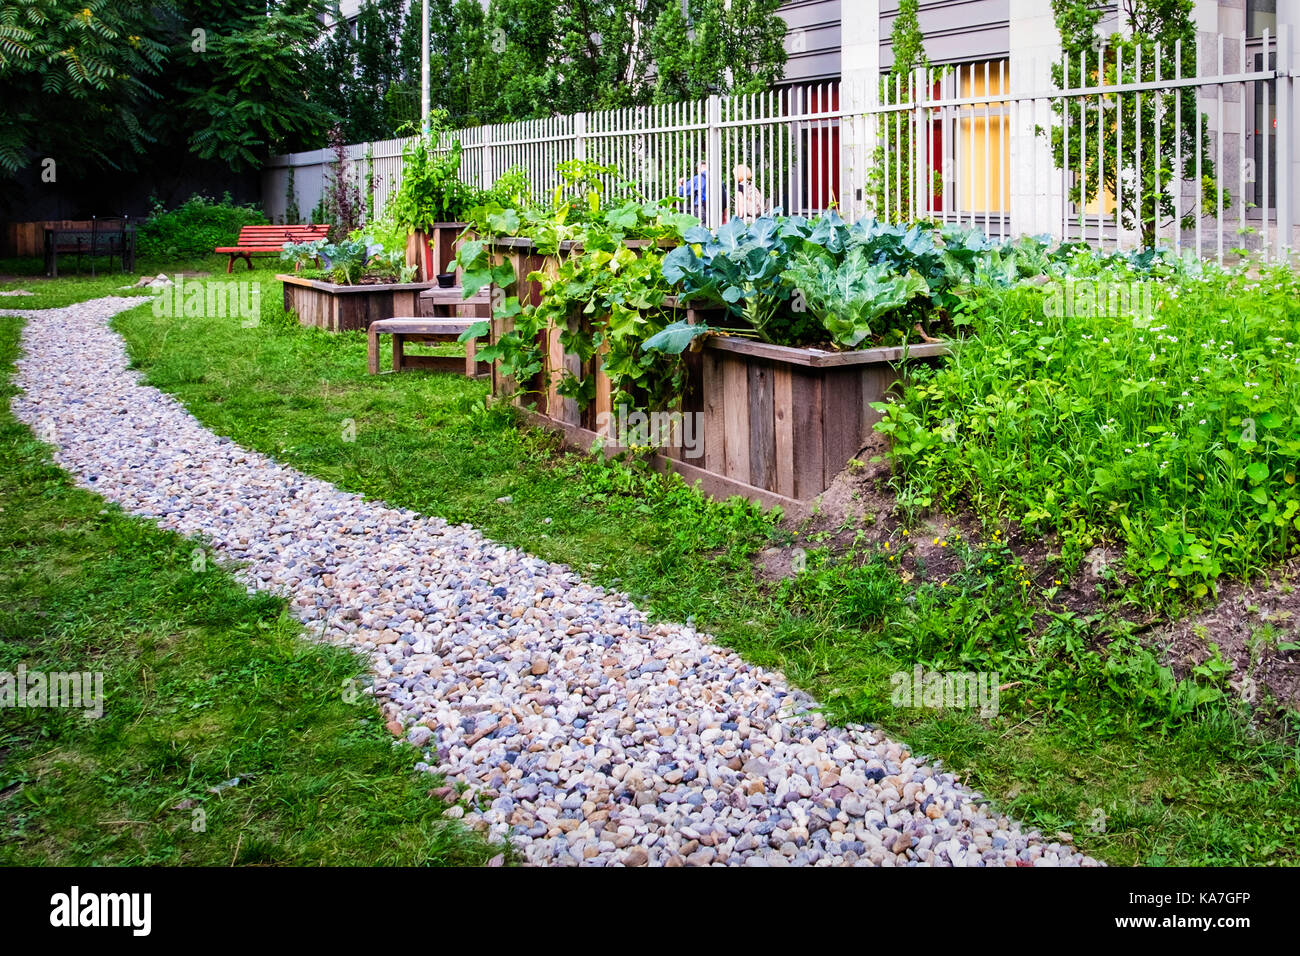 urban gardening in berlin germany stock photos urban gardening in berlin germany stock images. Black Bedroom Furniture Sets. Home Design Ideas